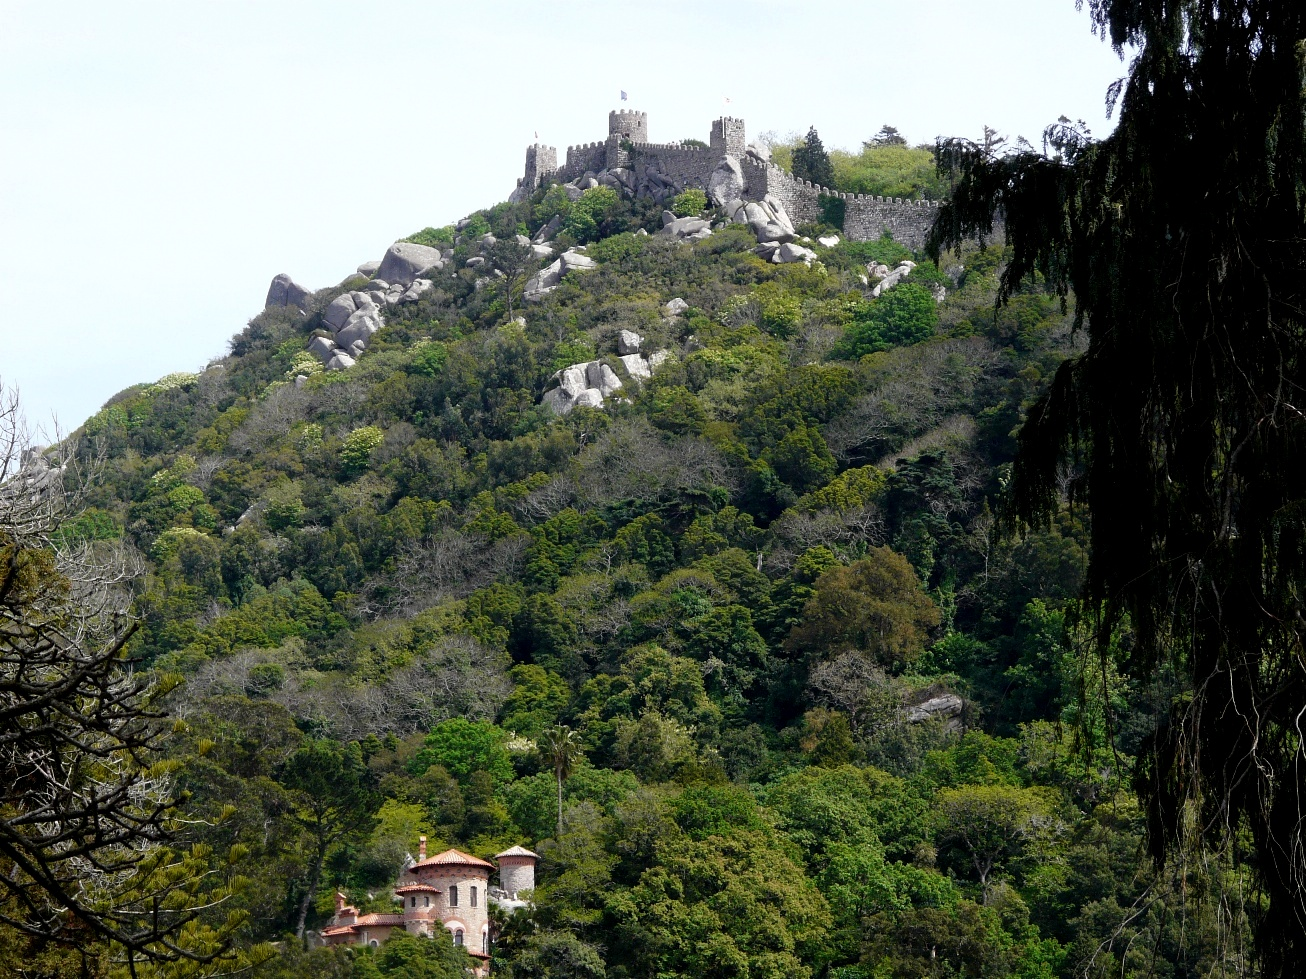 Picture 10, Castelo dos Mouros, Sintra, Portugal